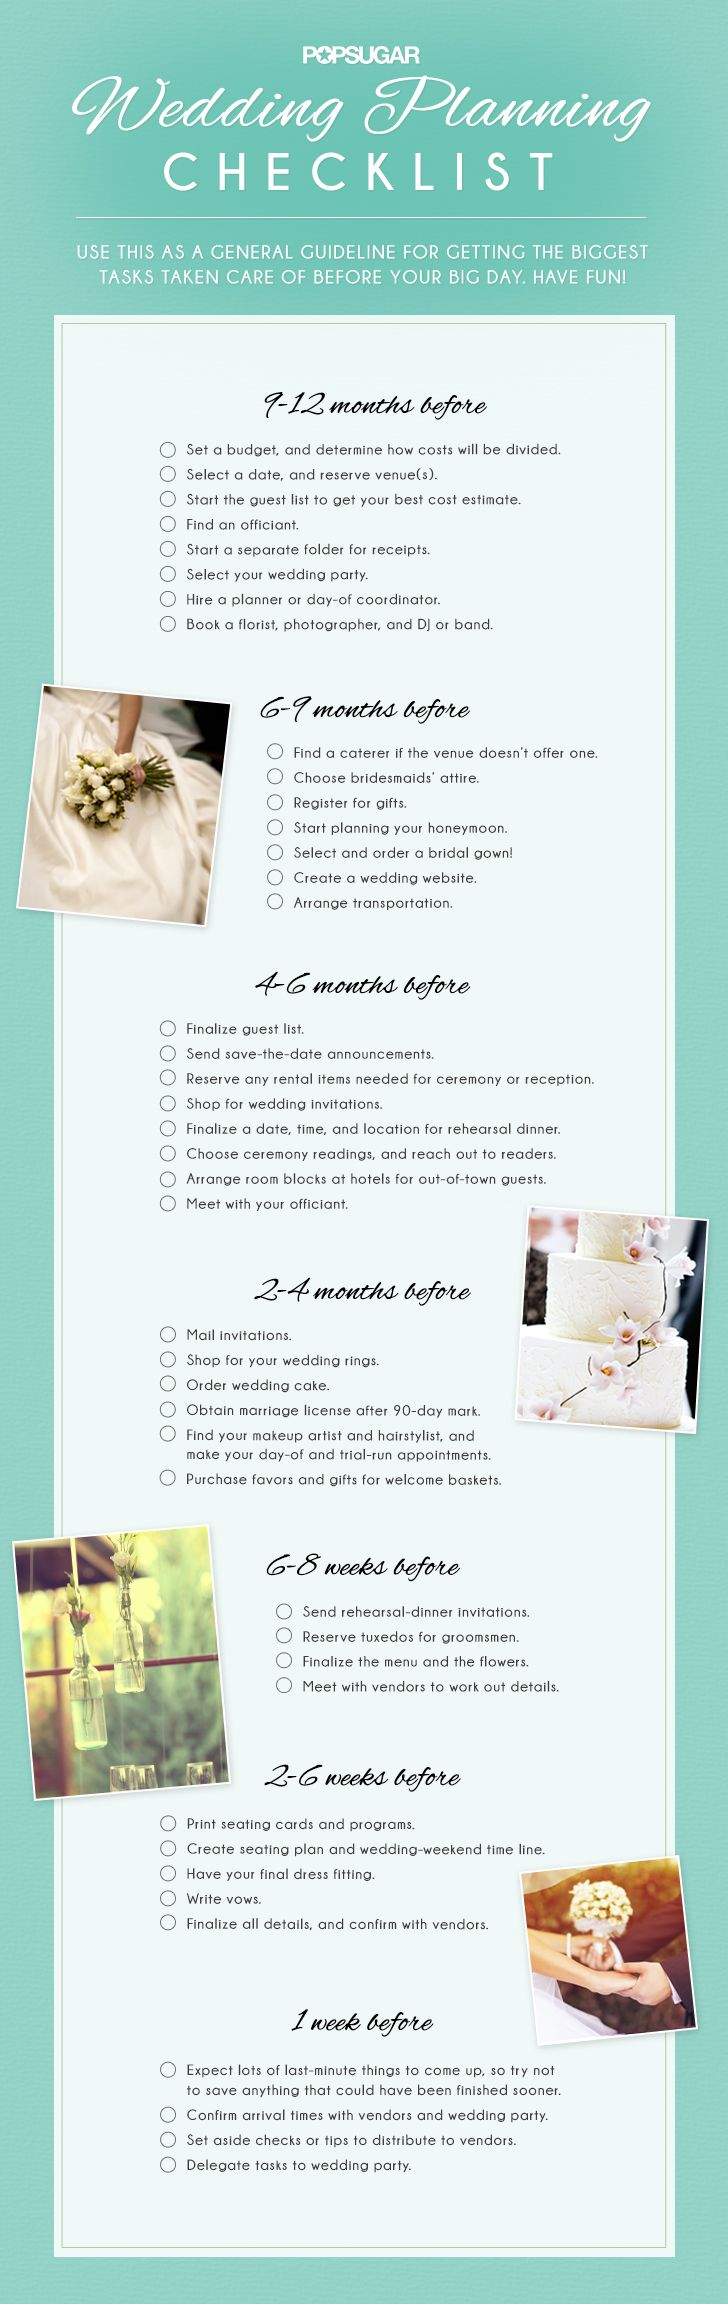 planning guide to list wedding